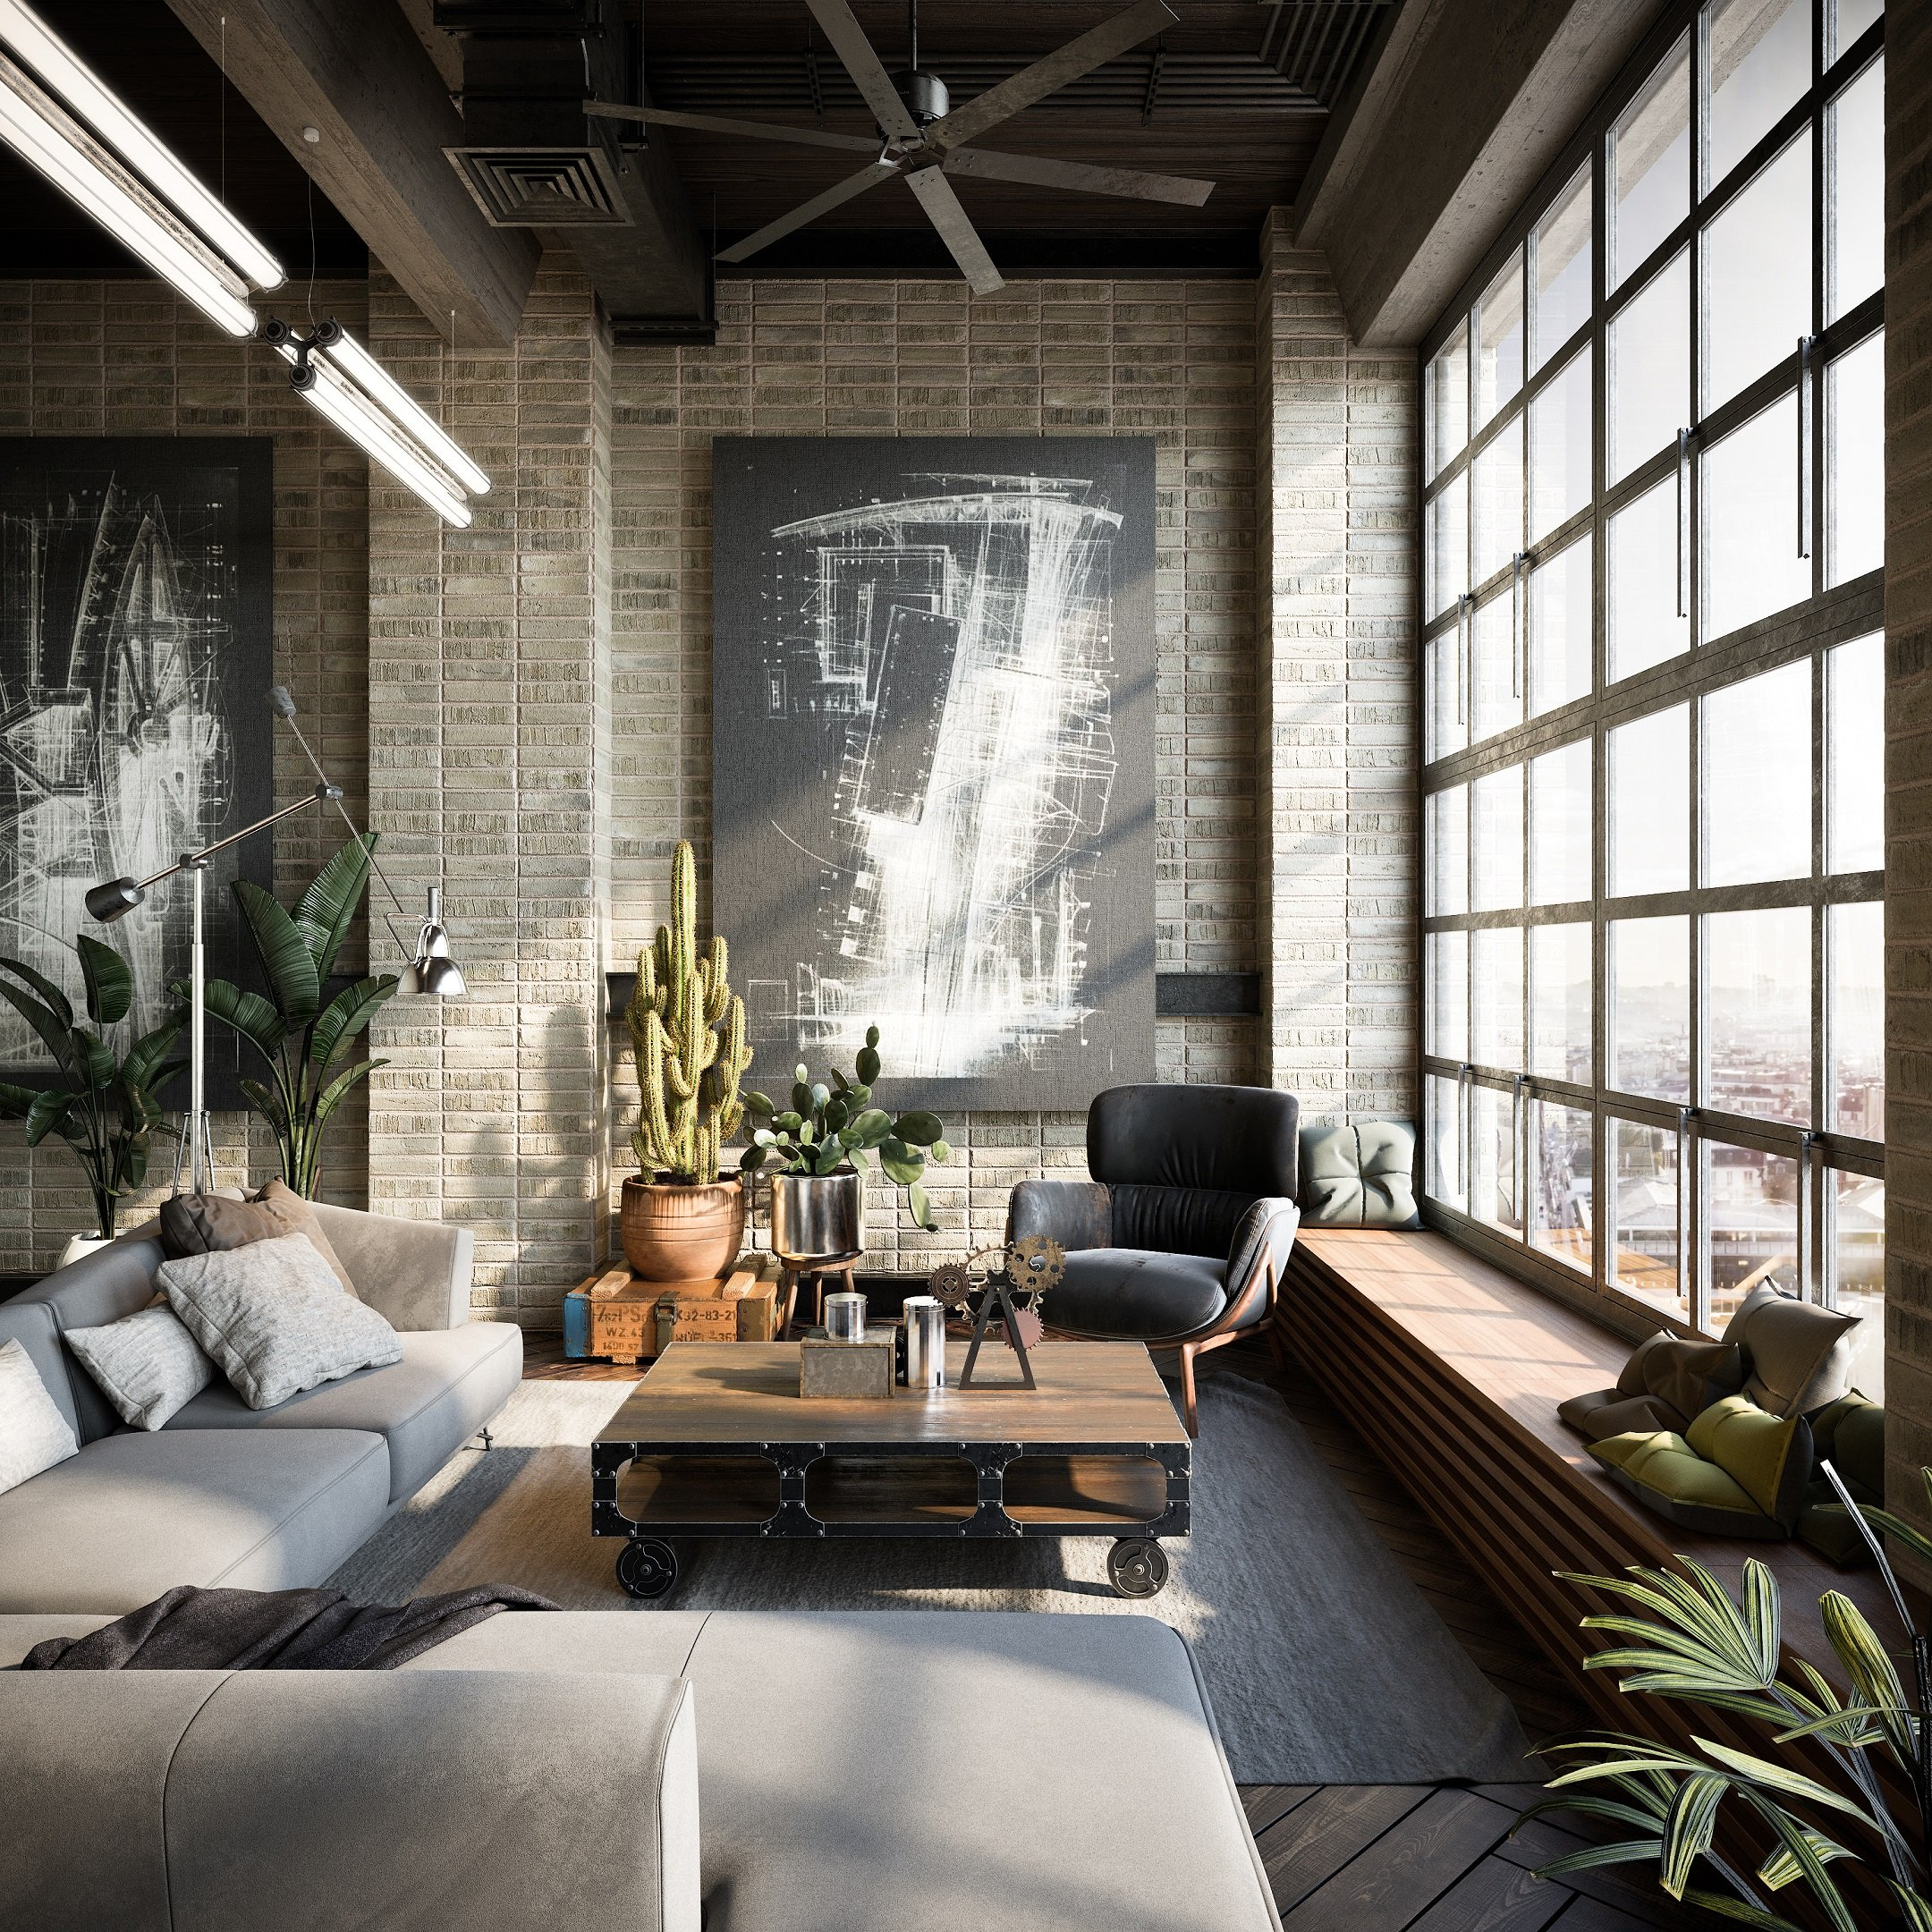 3D Visualization for Interior Design: Industrial-Style Living Room